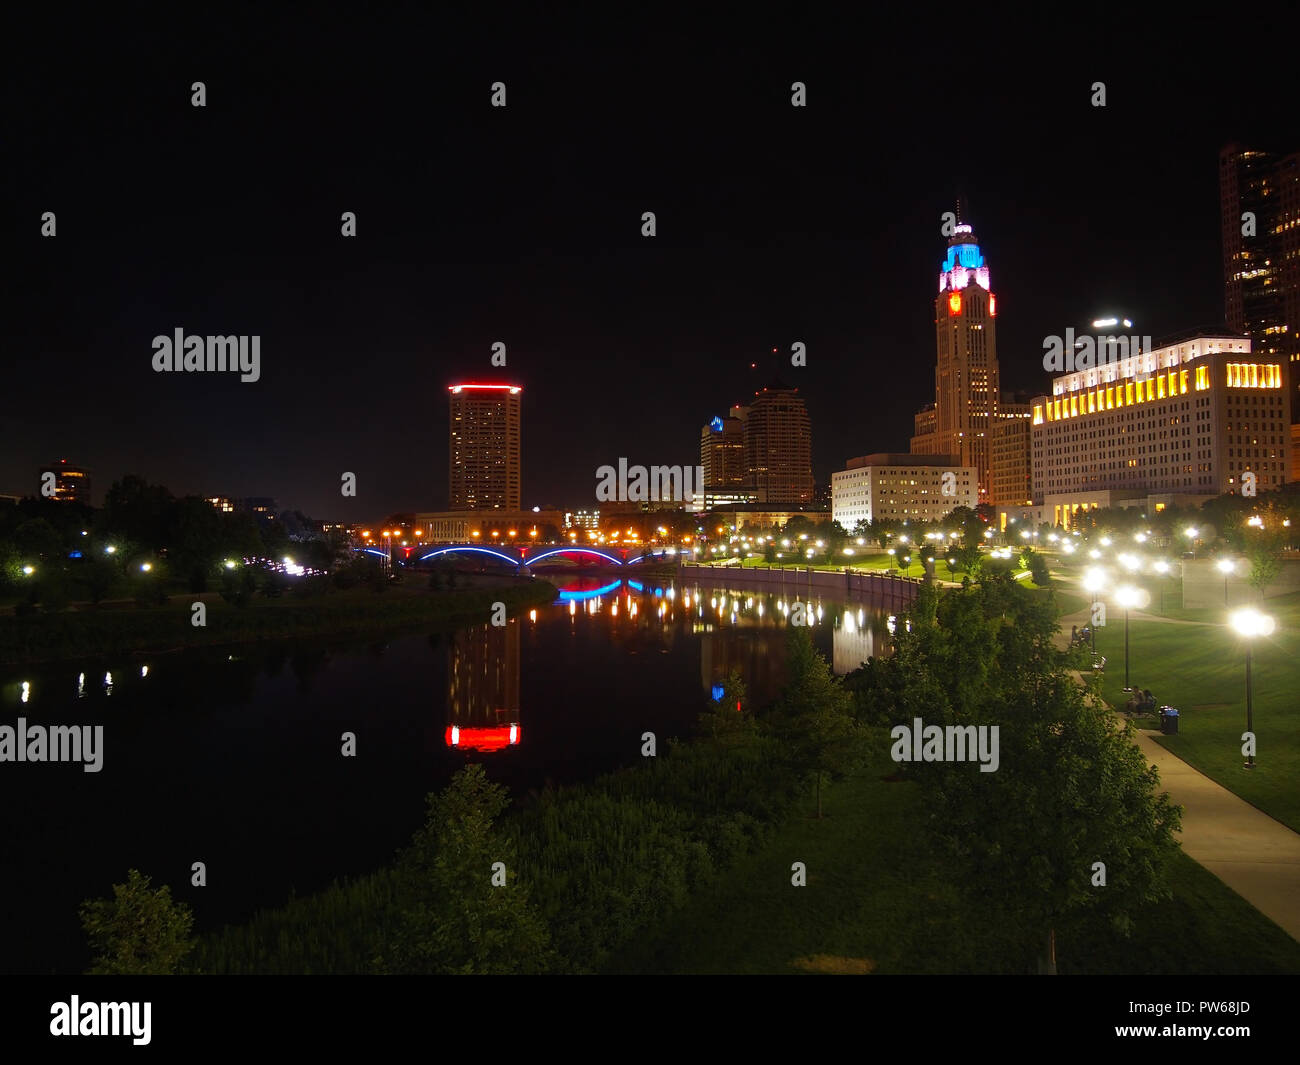 COLUMBUS, OHIO - JULY 15, 2018: A night view of John W. Galbreath Bicentennial Park and the city skyline of Columbus, Ohio reflecting on the river. - Stock Image